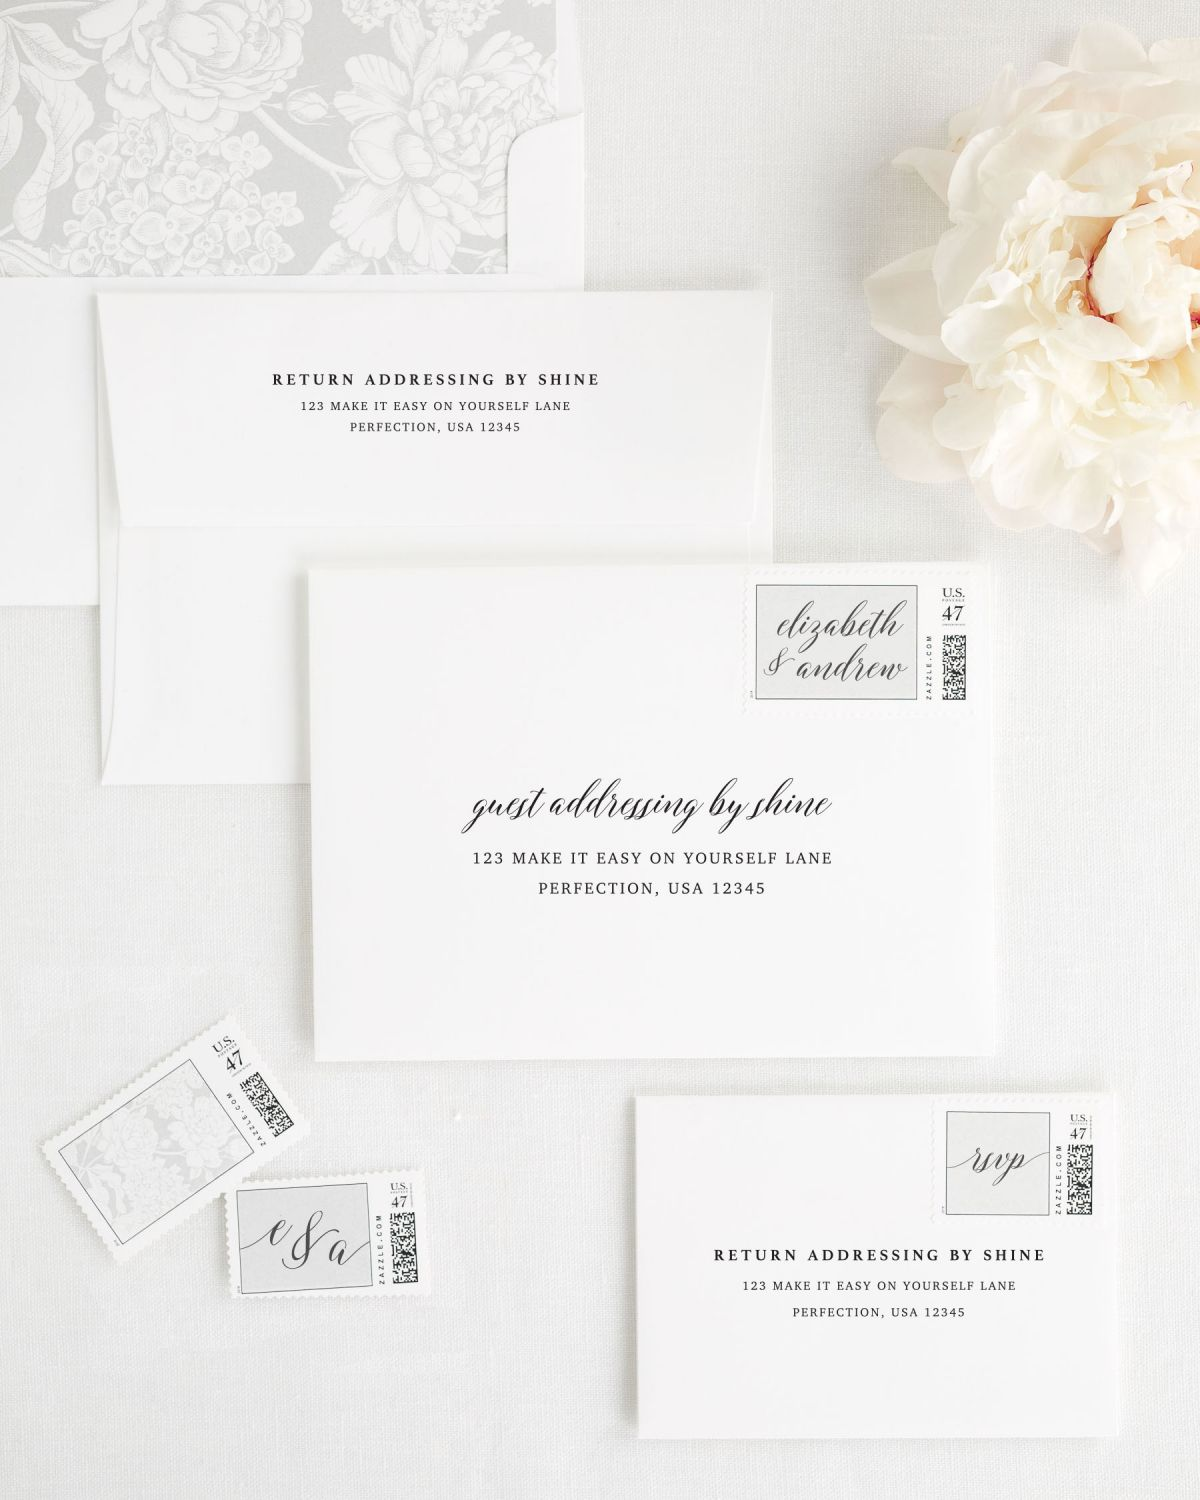 Wedding Invitation Envelopes w ith Guest Addressing and Customized Stamps